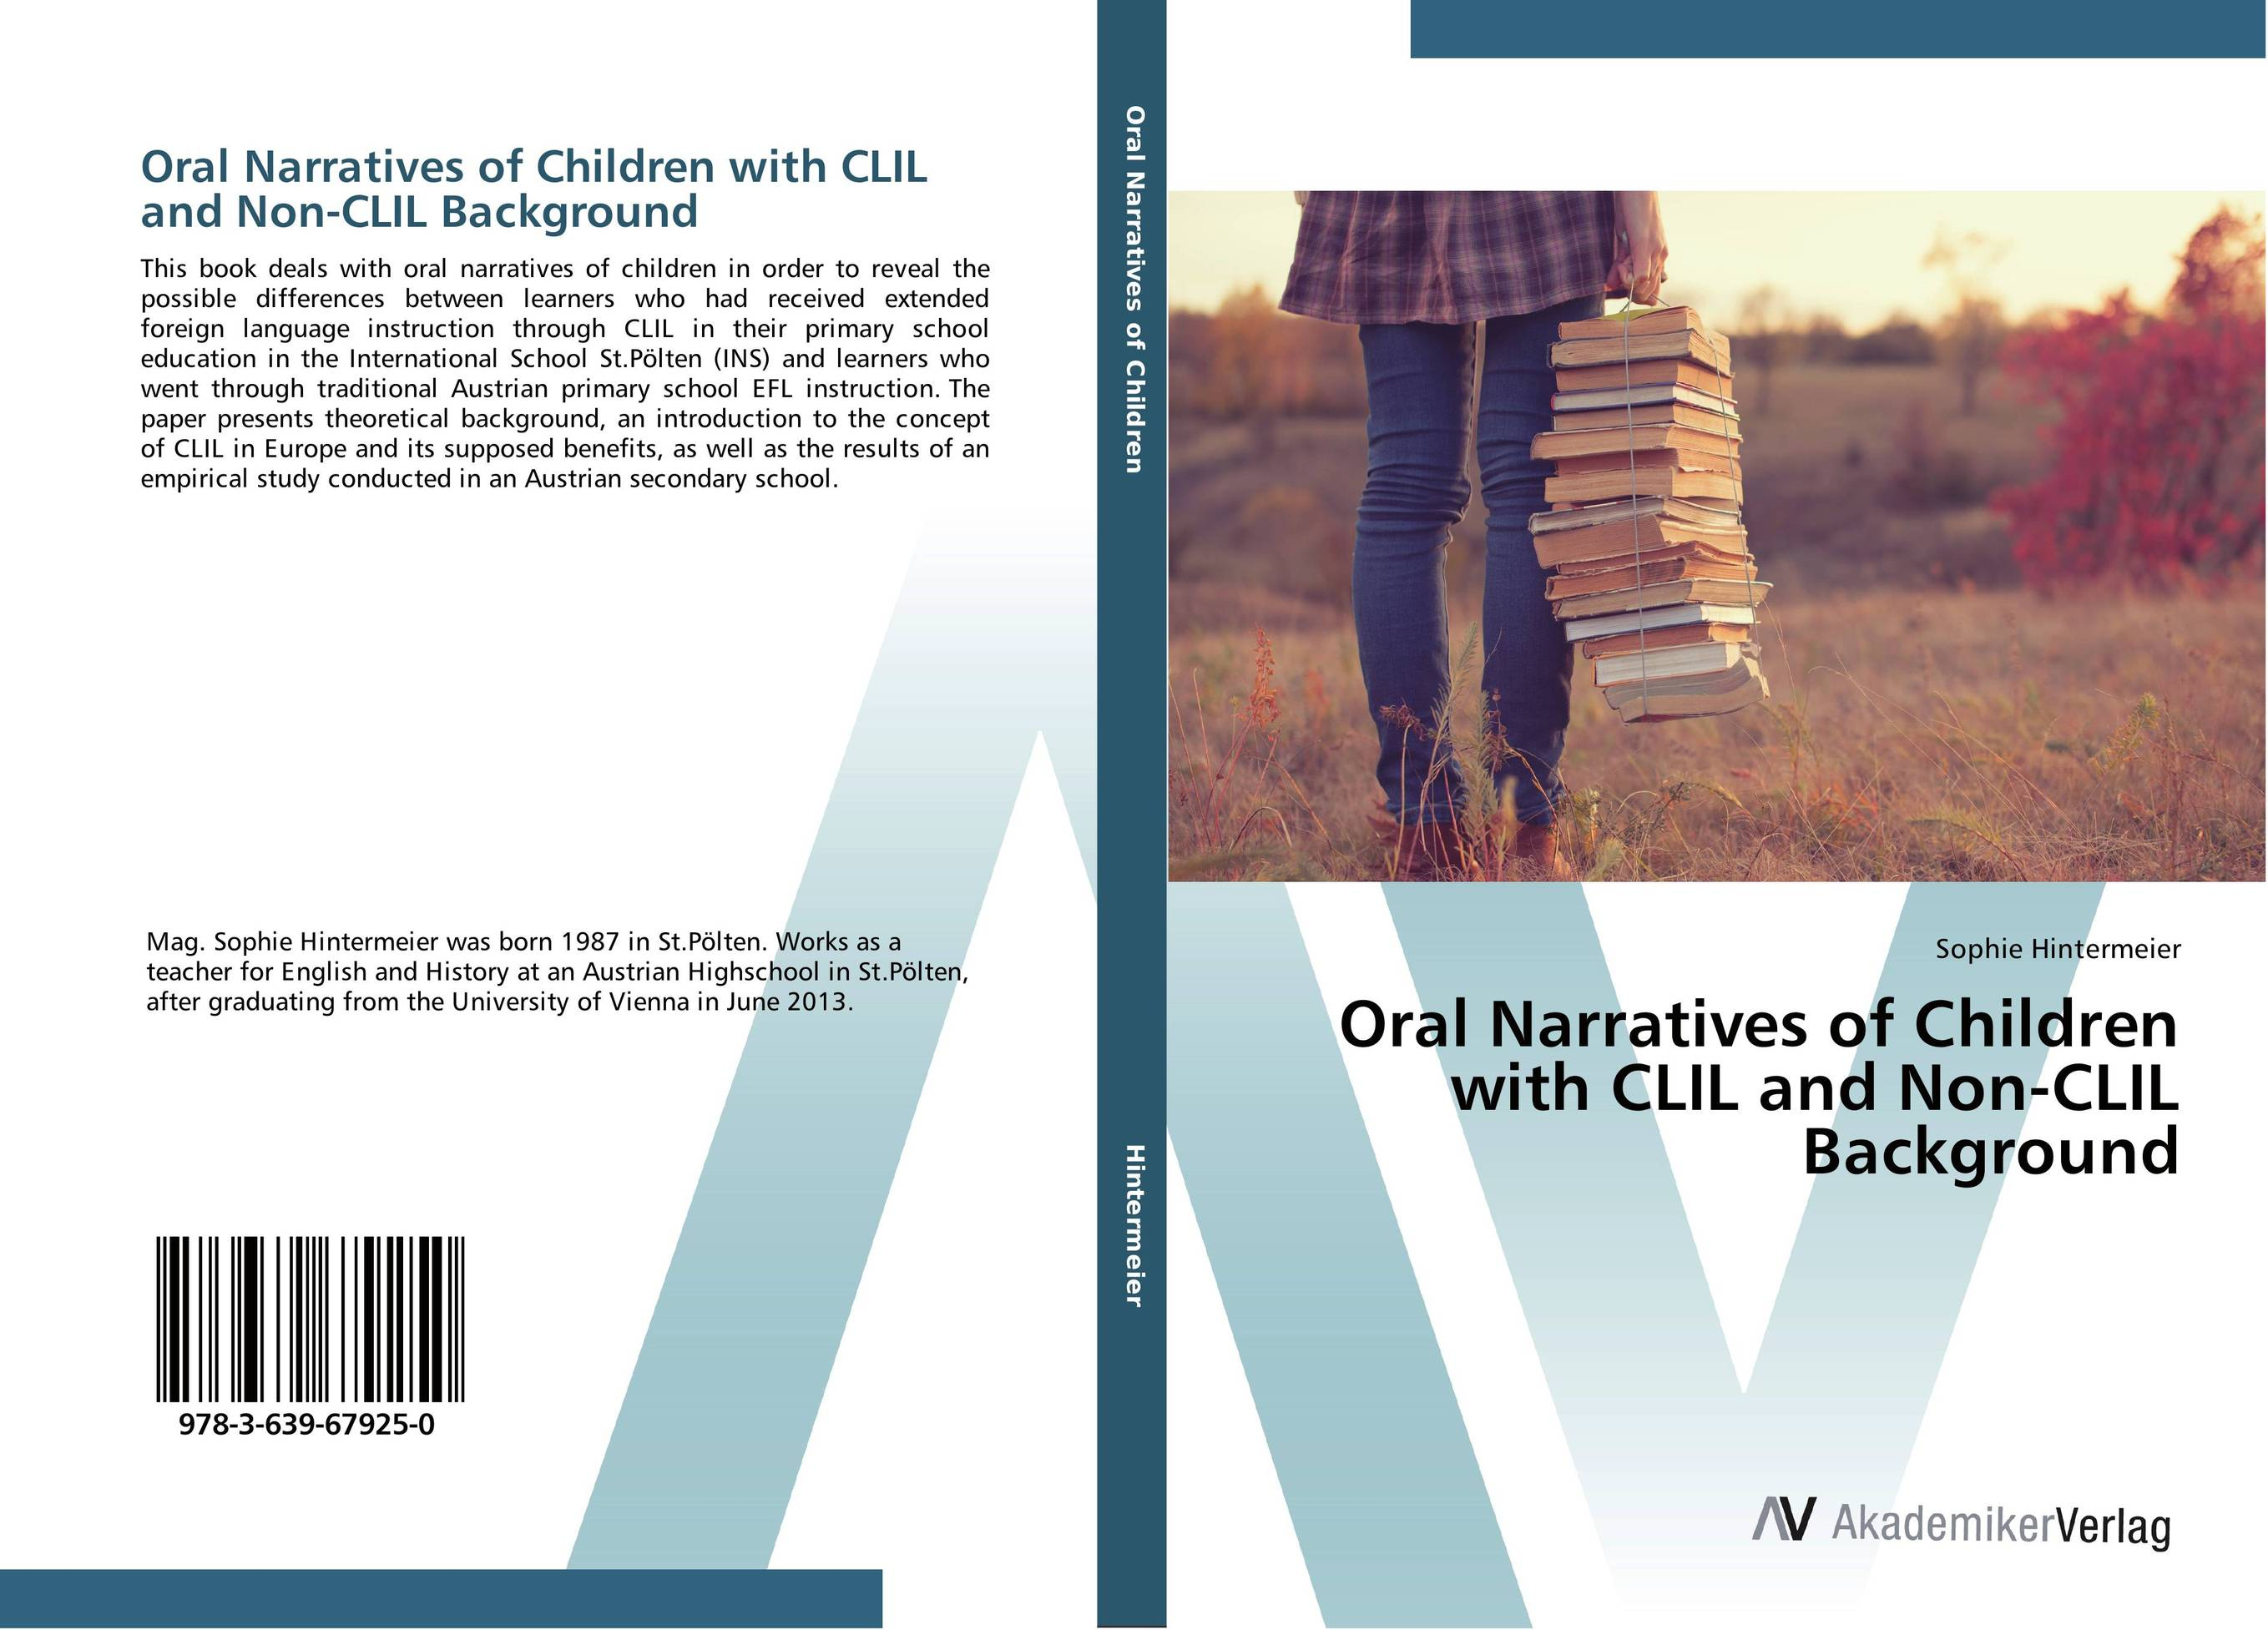 Oral Narratives of Children with CLIL and Non-CLIL Background teacher s use of english coursebooks with primary school learners